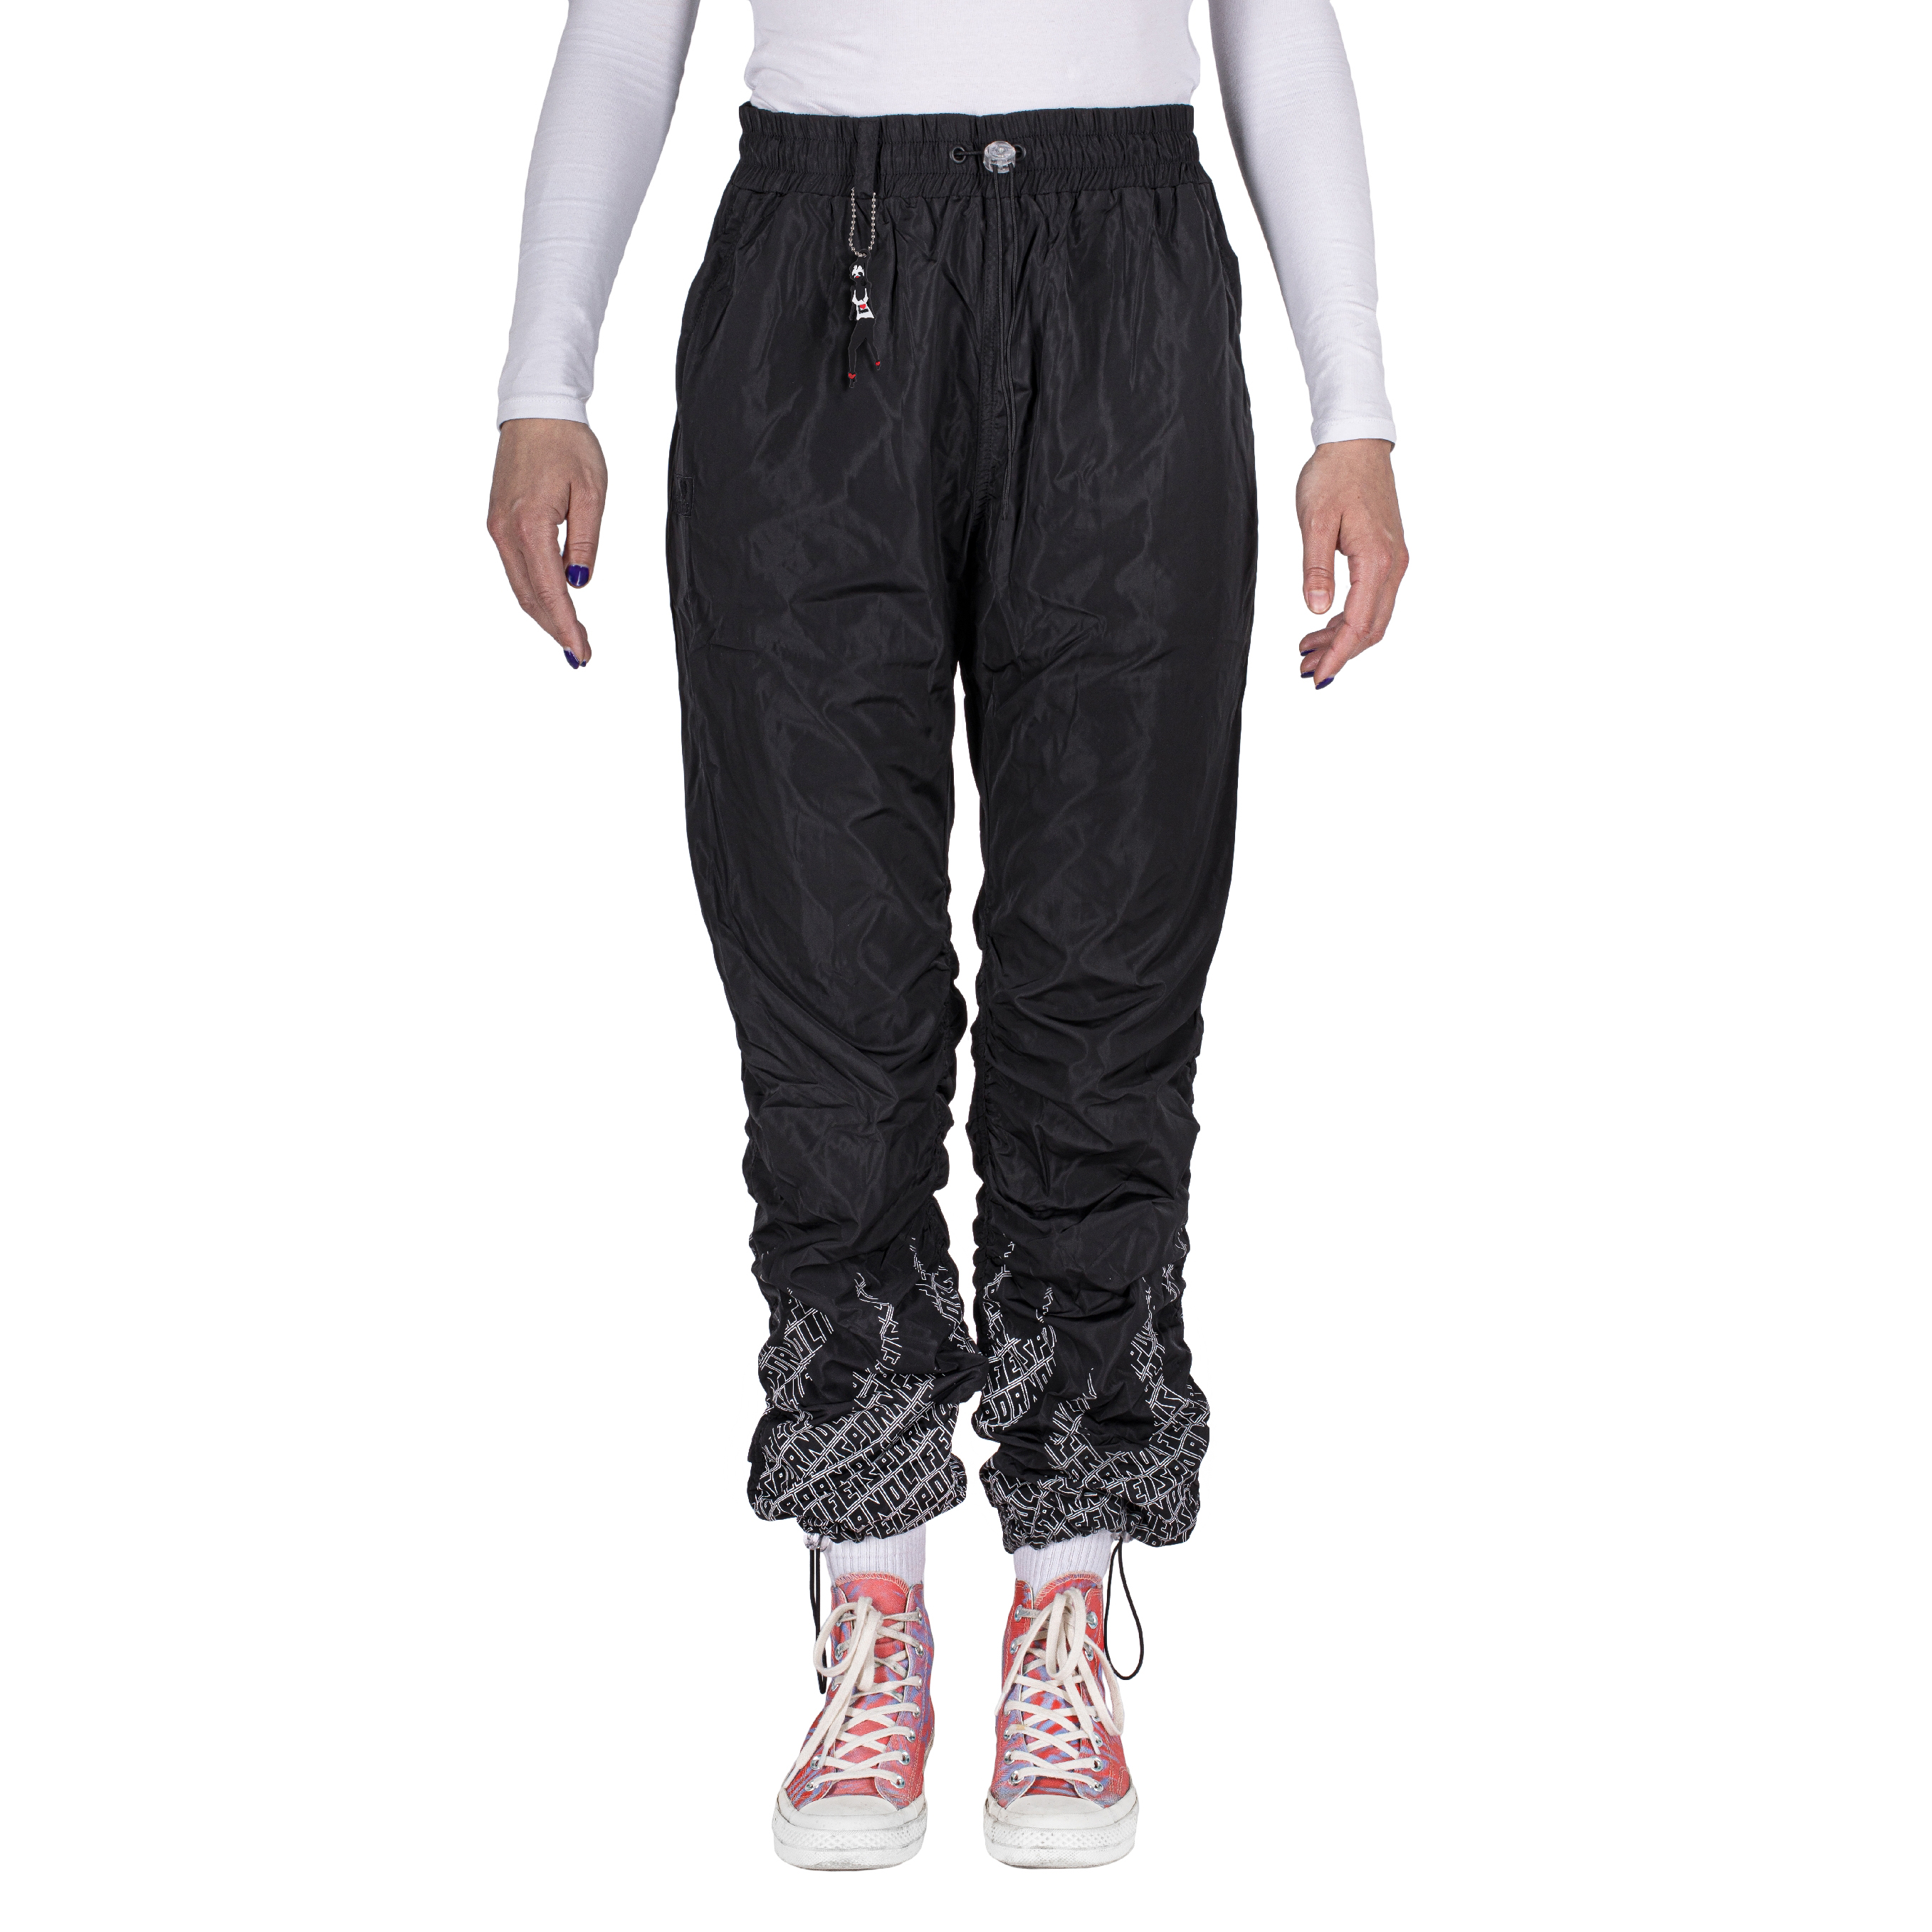 LADIES FIRE PANTS BLACK